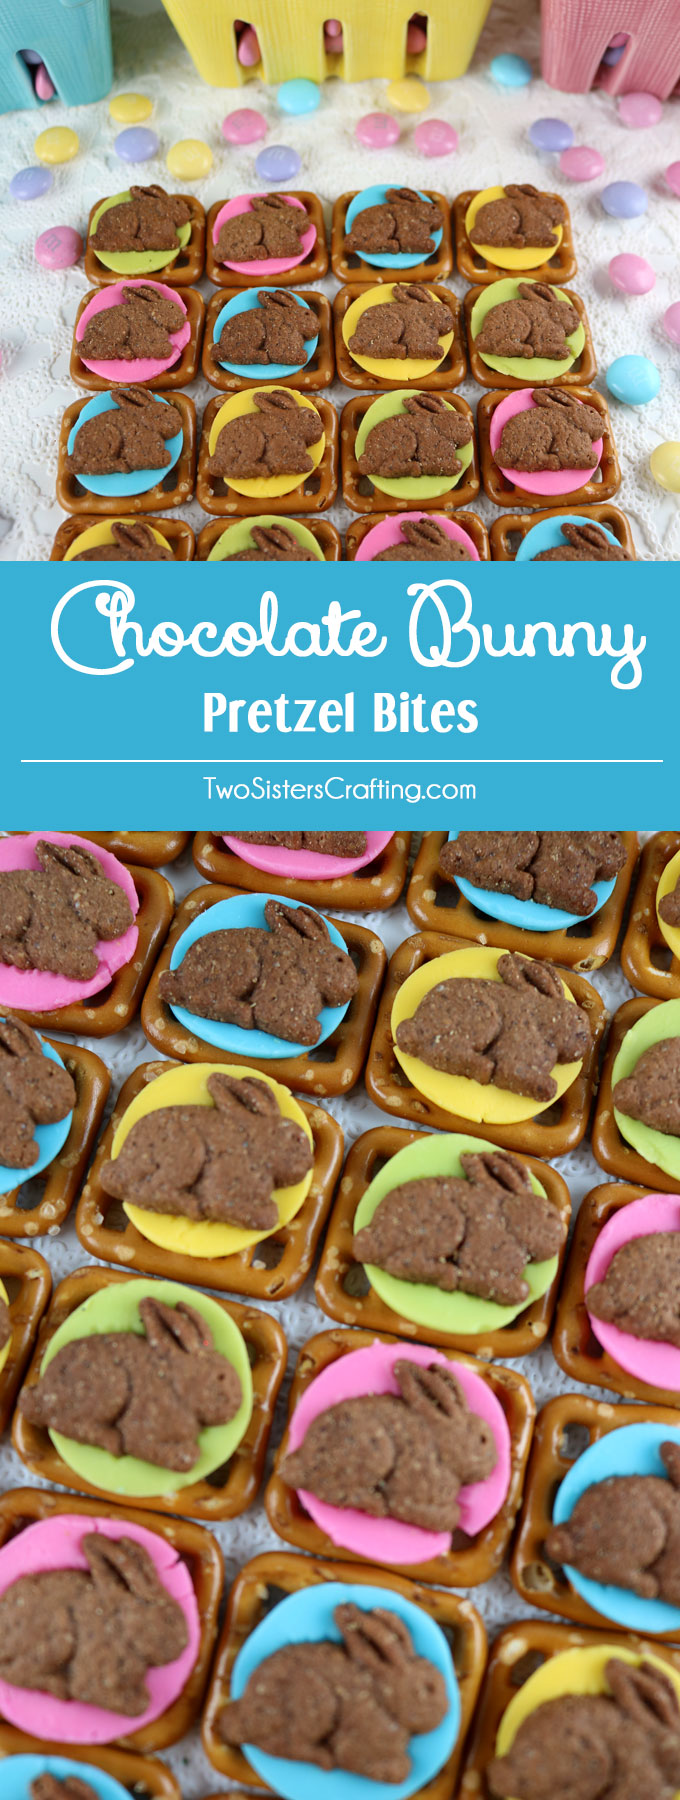 Our easy to make Chocolate Bunny Pretzel Bites are adorable bites of sweet and salty Easter Treat goodness. They are perfect as a little extra Easter Dessert or an anytime springtime snack. Follow us for more fun Easter Food Ideas.